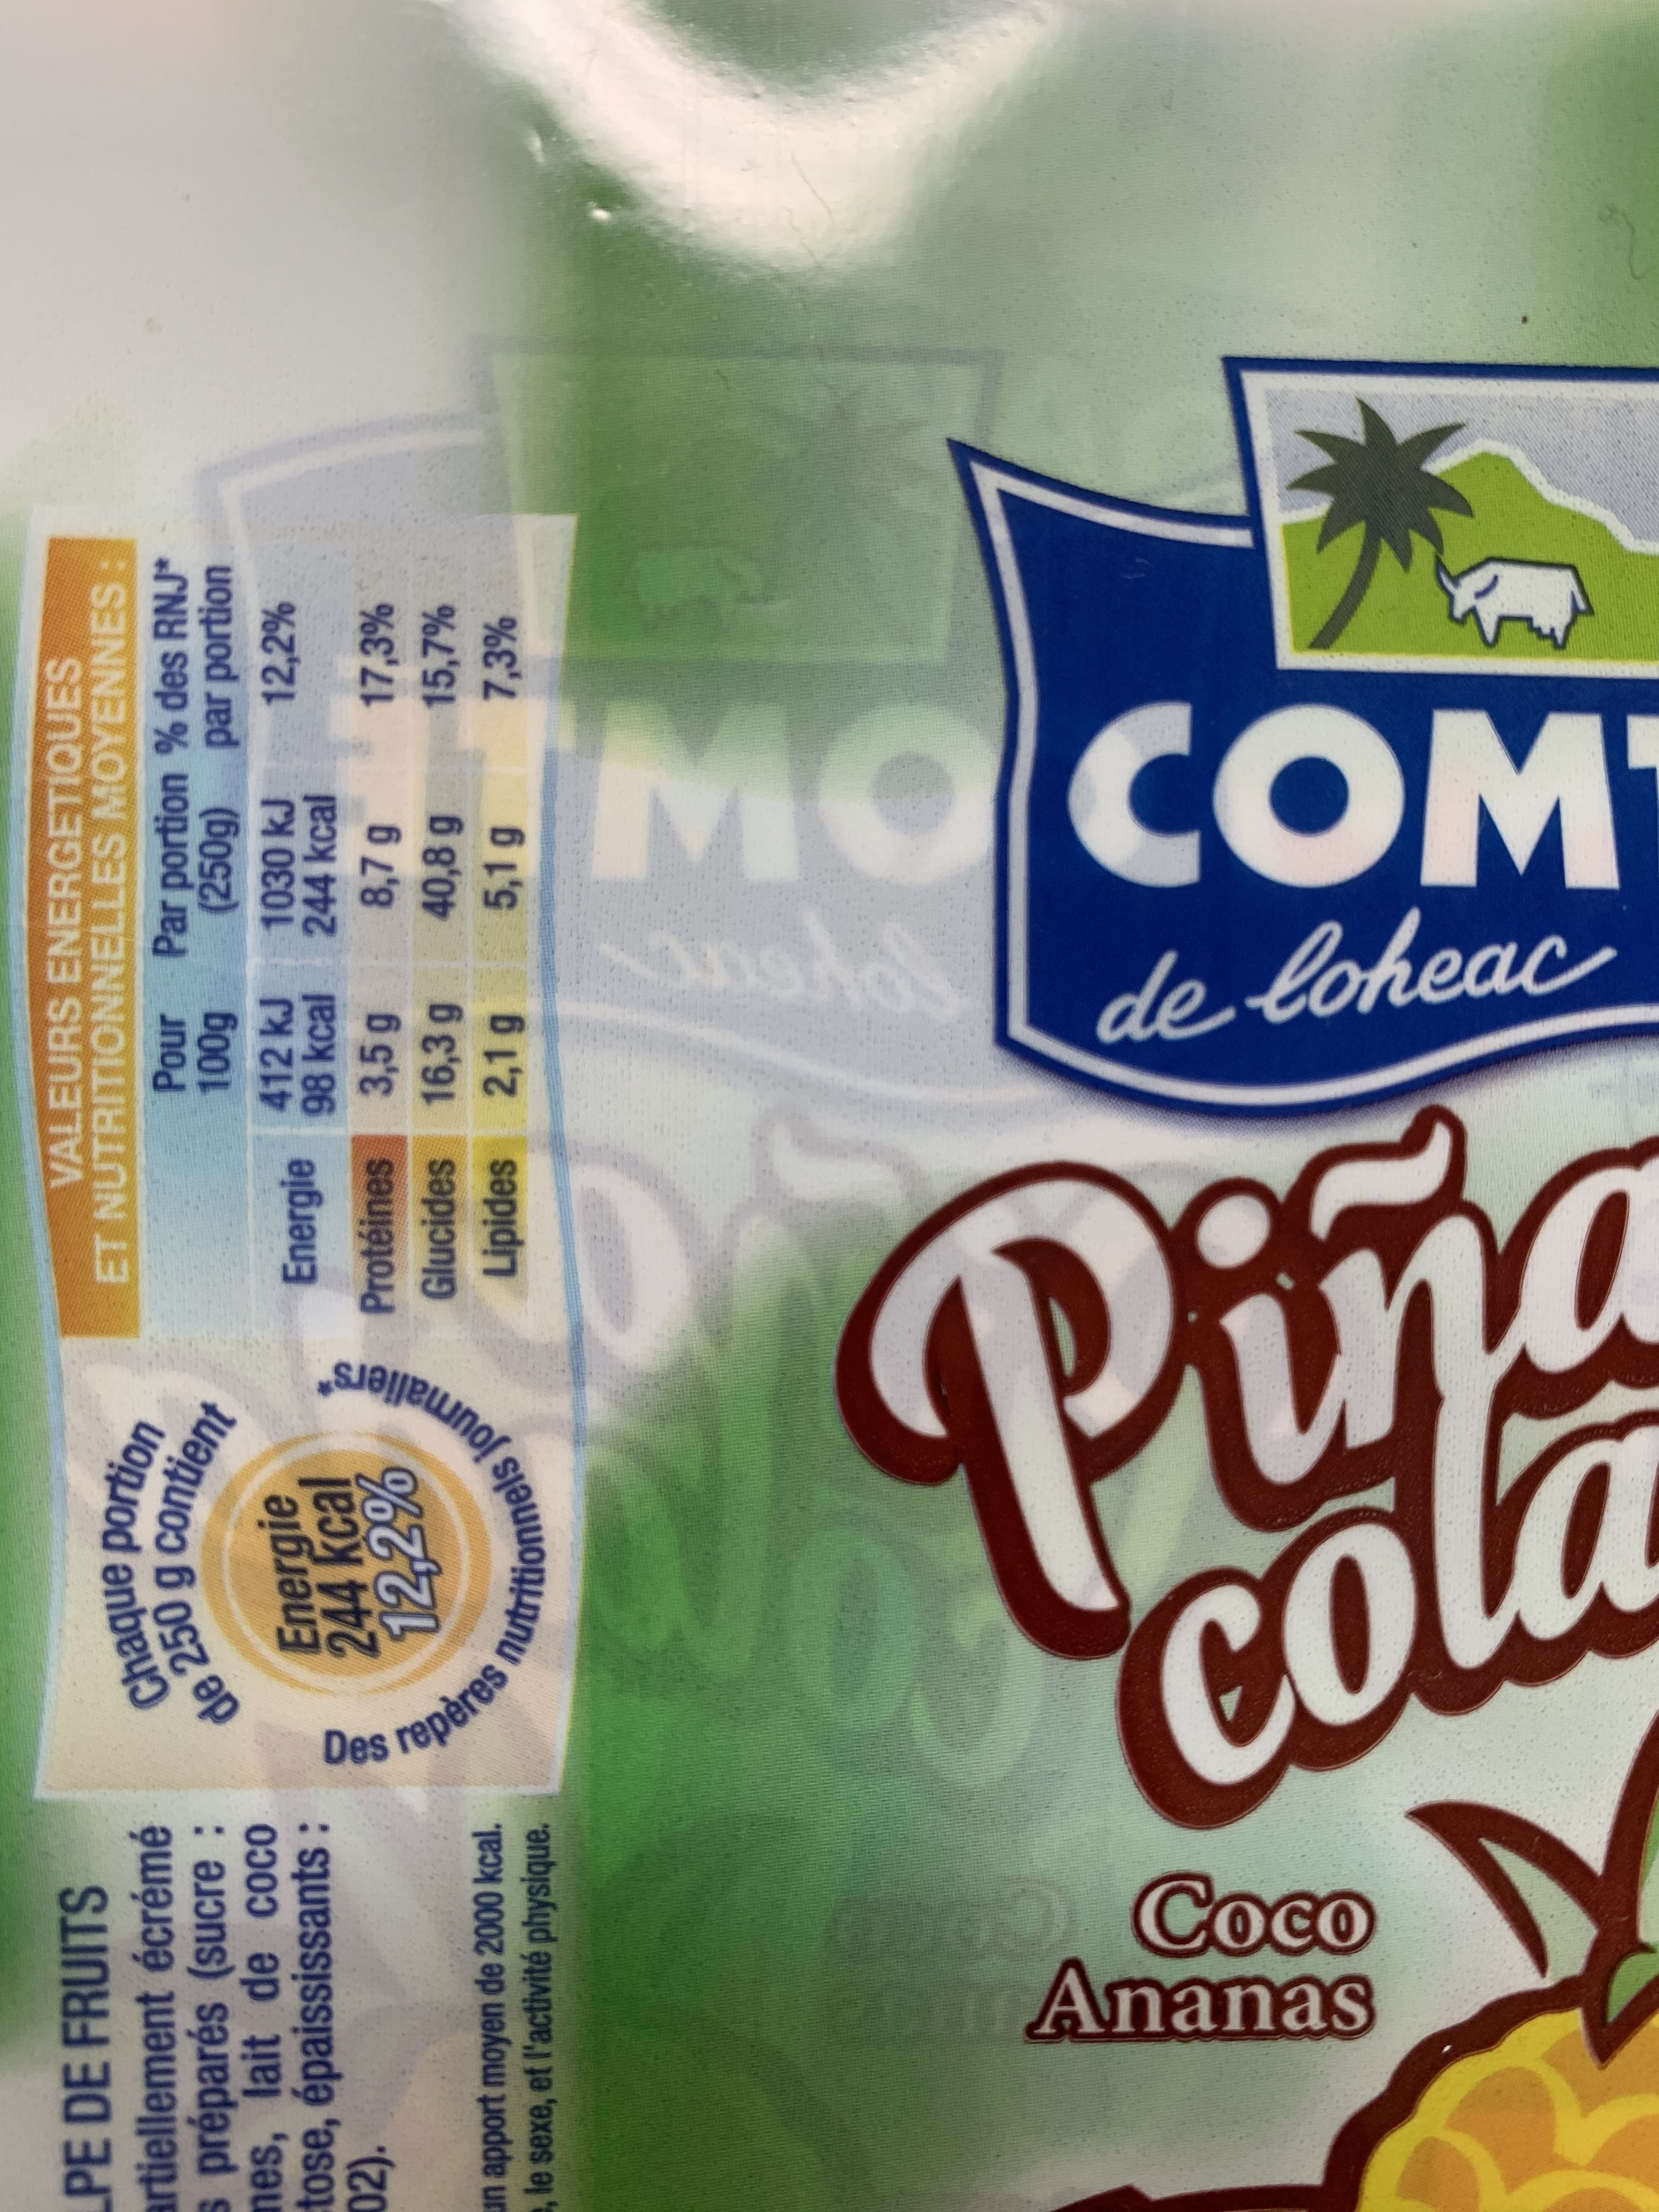 Yaourt à boire ananas coco Piñacolada - Product - fr